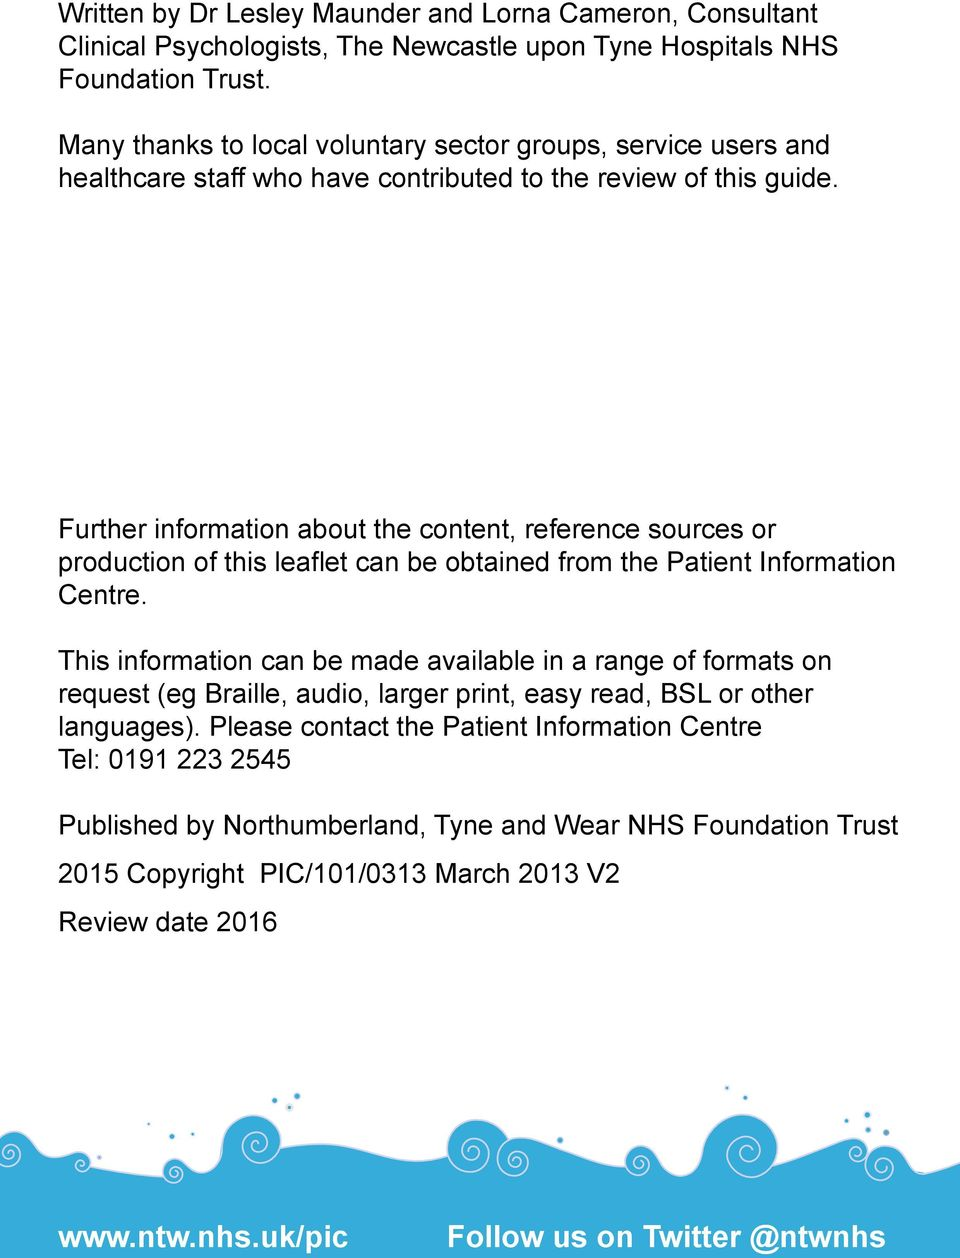 Further information about the content, reference sources or production of this leaflet can be obtained from the Patient Information Centre.